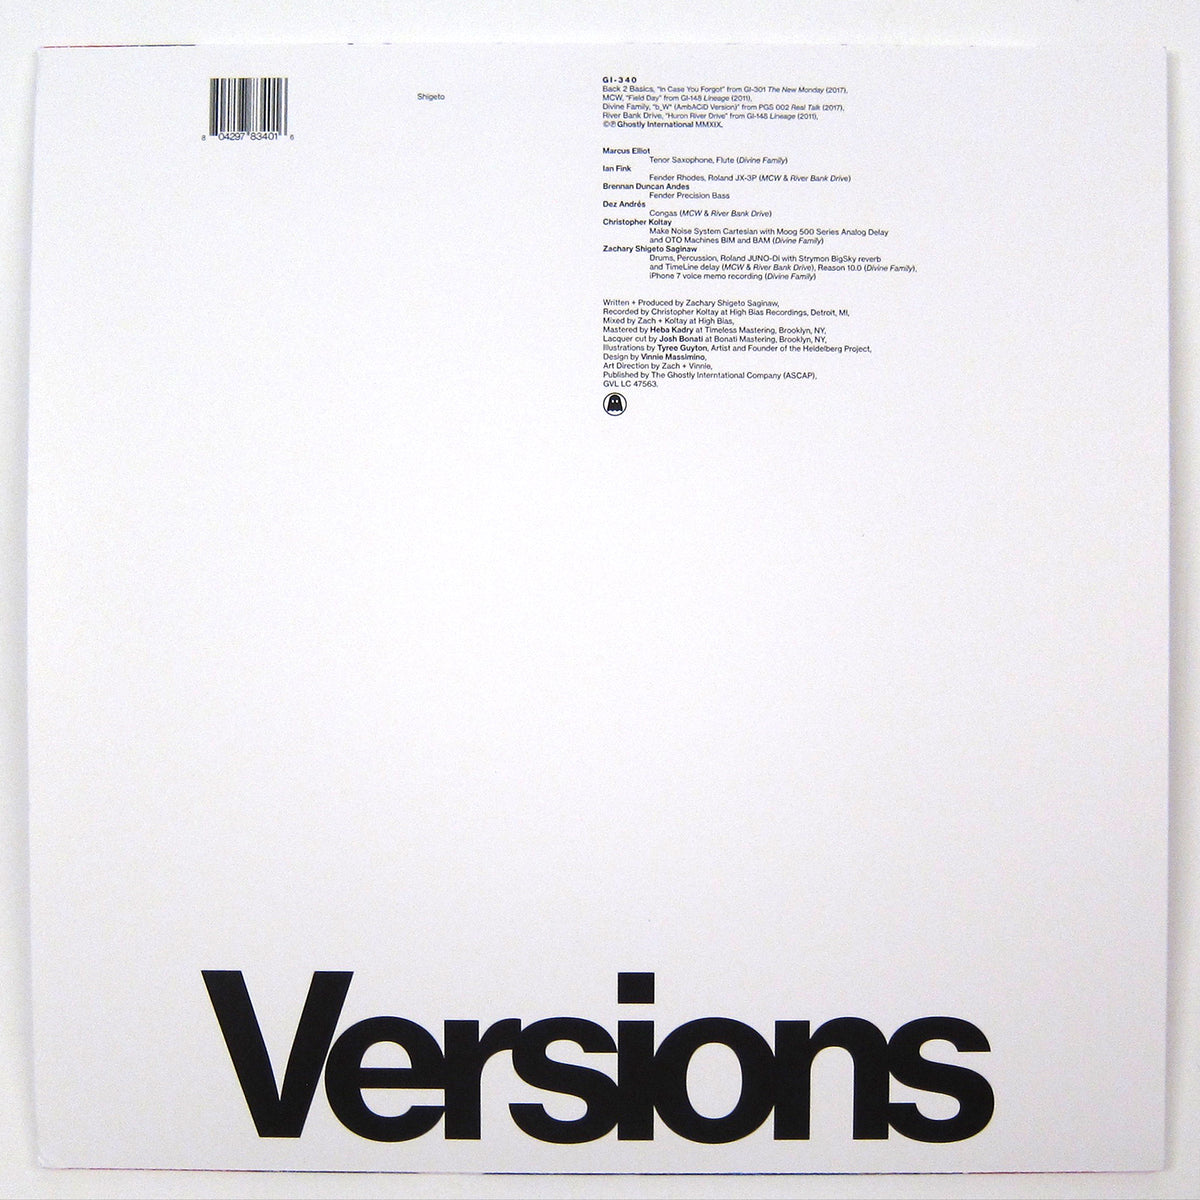 Shigeto: Versions Vinyl 12""